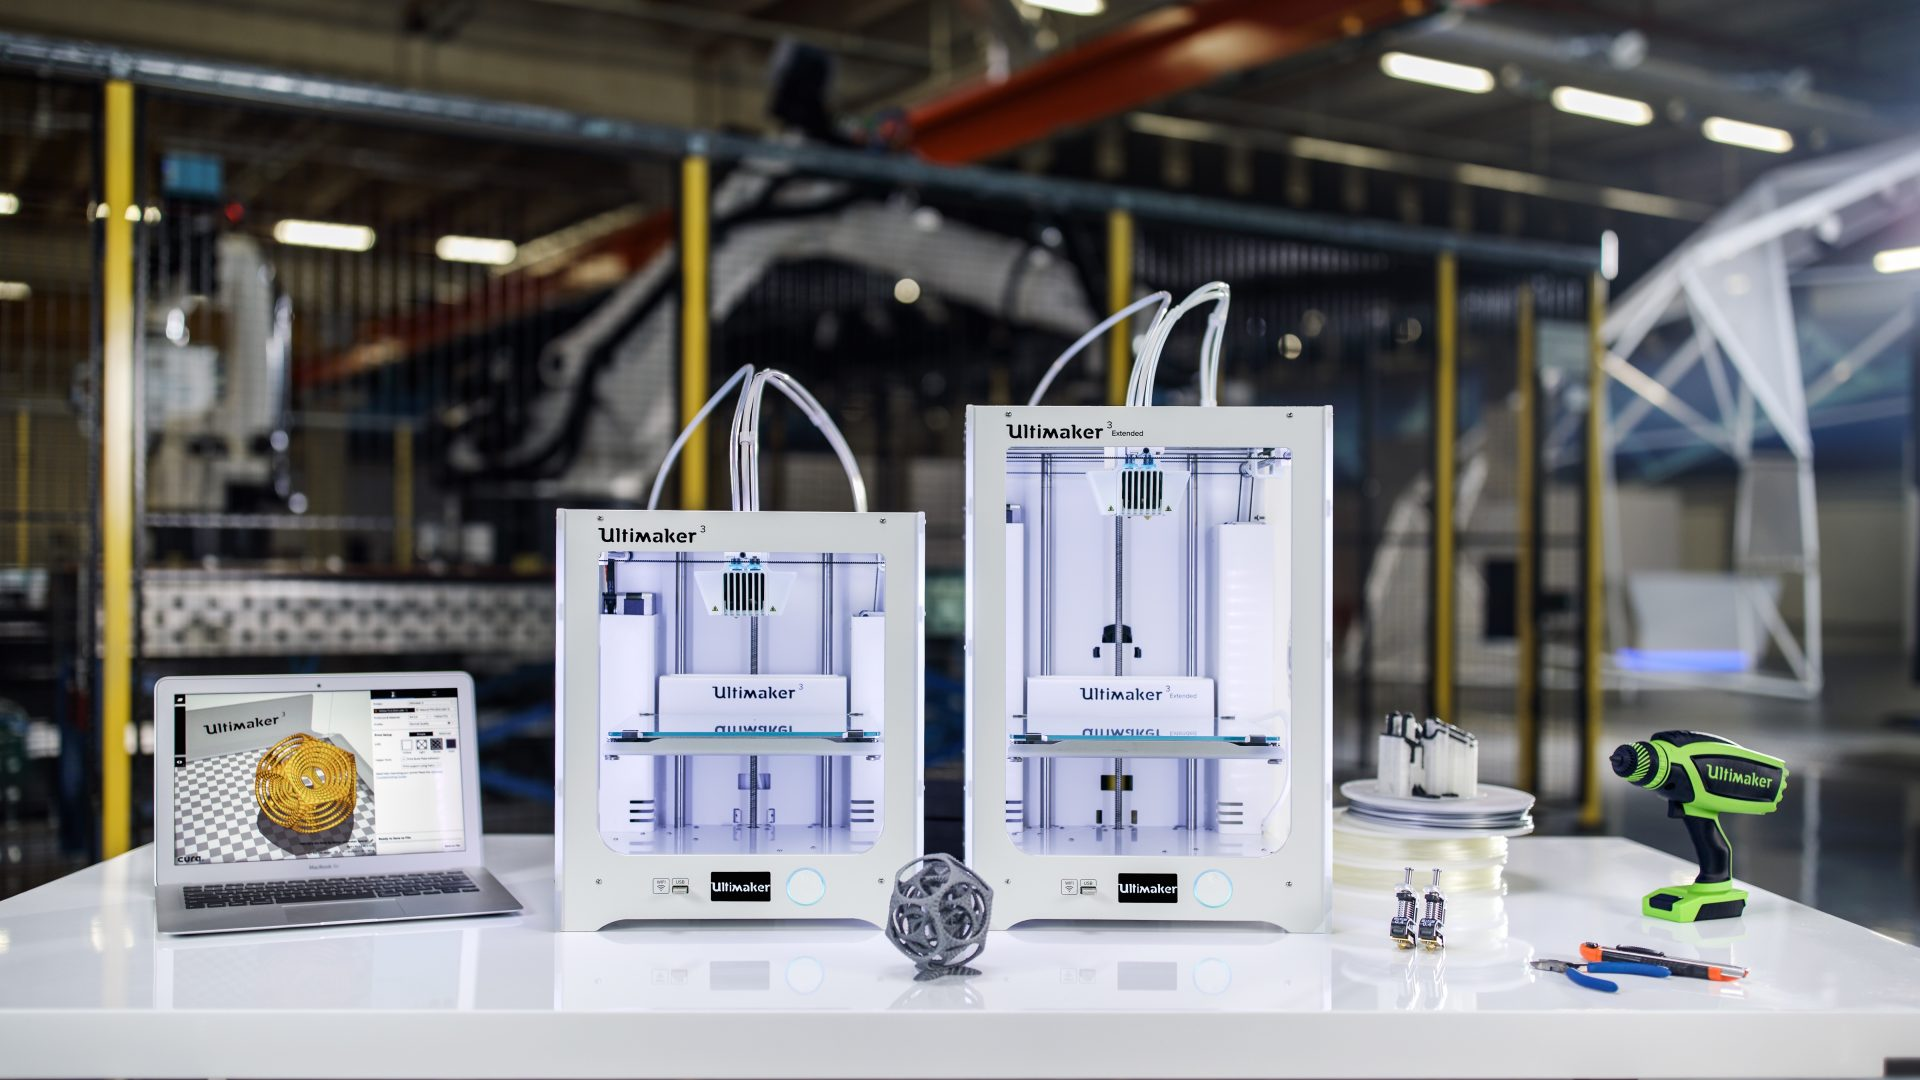 Sales of Ultimaker 3 desktop 3D printer for professional printing started